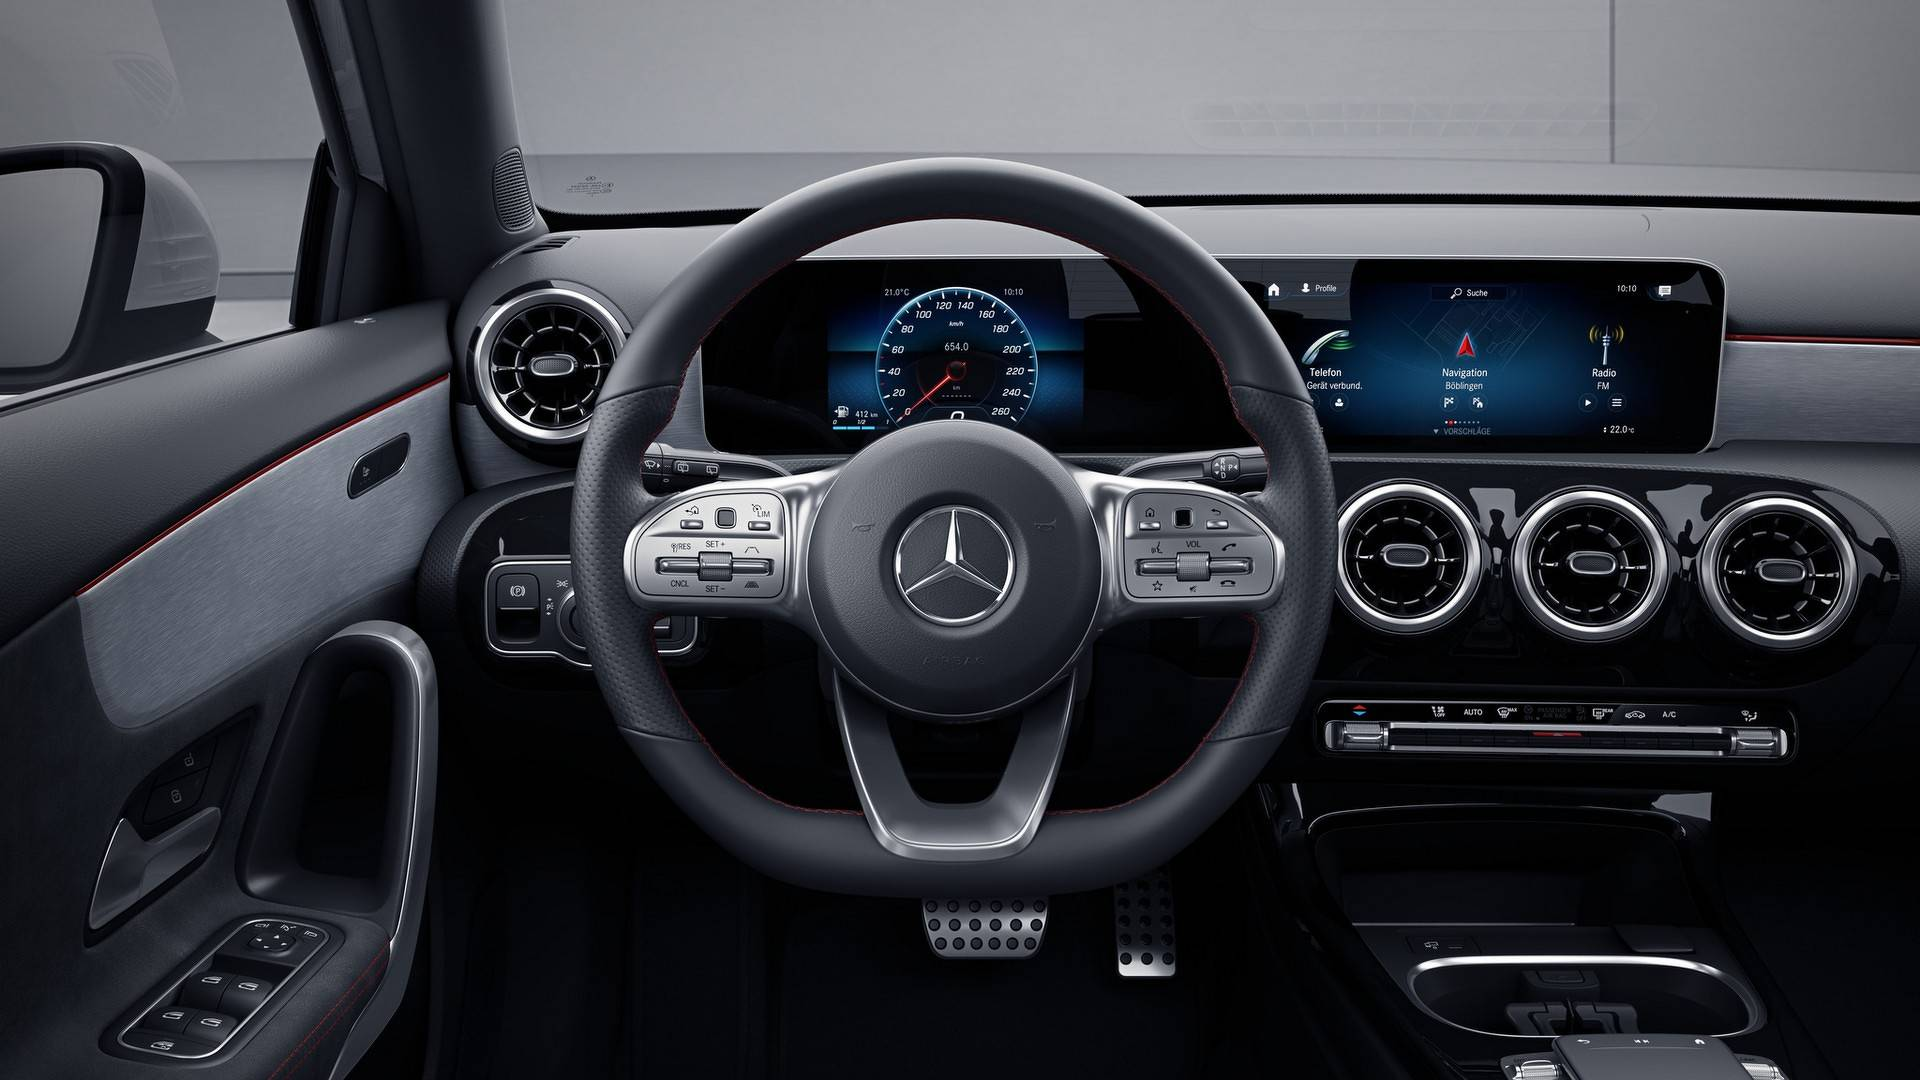 Mercedes B Klasse 2018 Interieur Mercedes Explains Why 2019 C Class Doesn T Have Mbux Infotainment